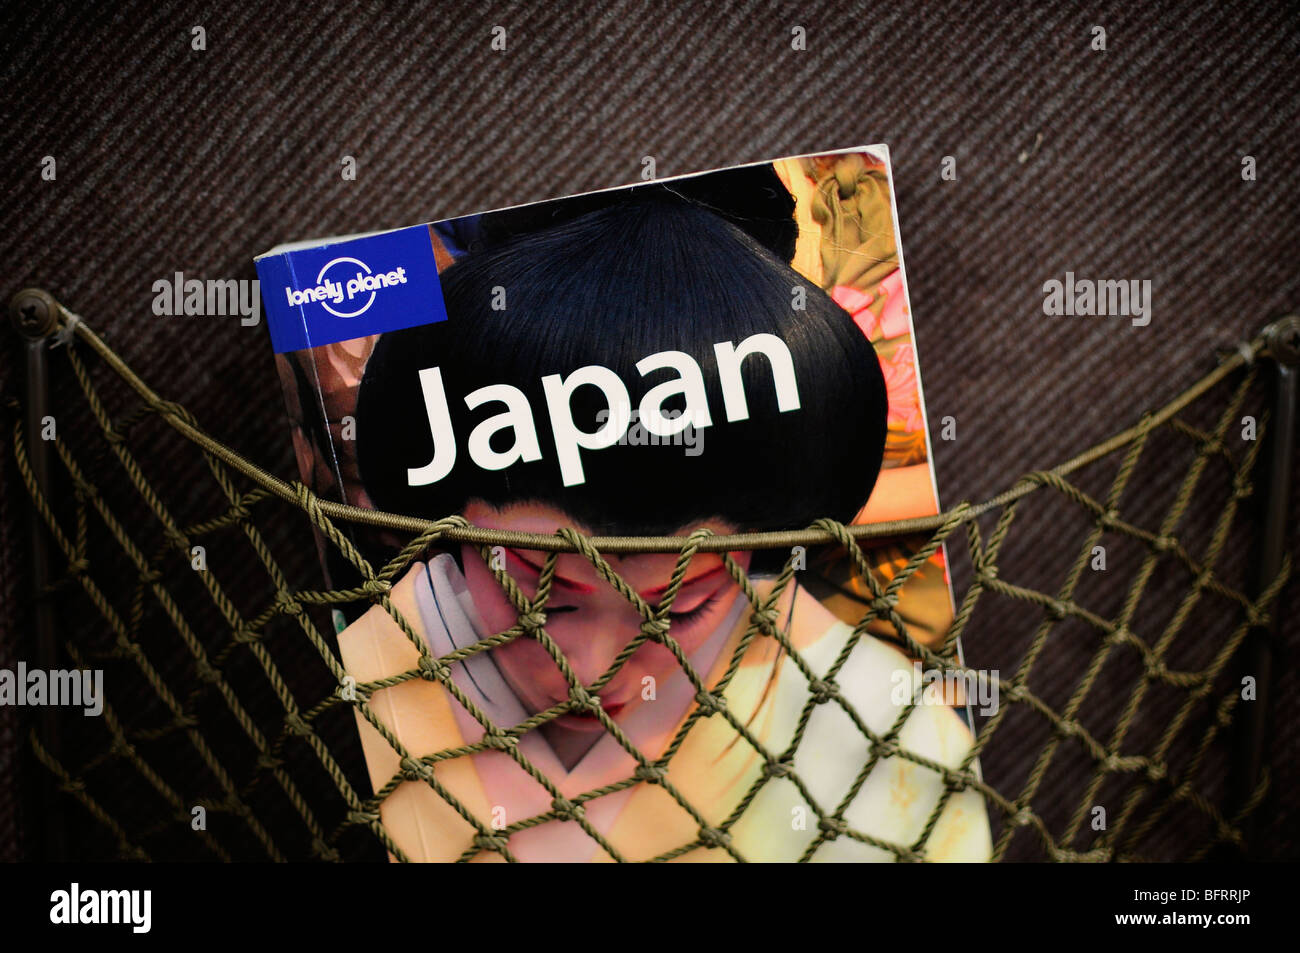 Copy of Lonely Planet Japan travel guide in a train seat pocket, Japan - Stock Image